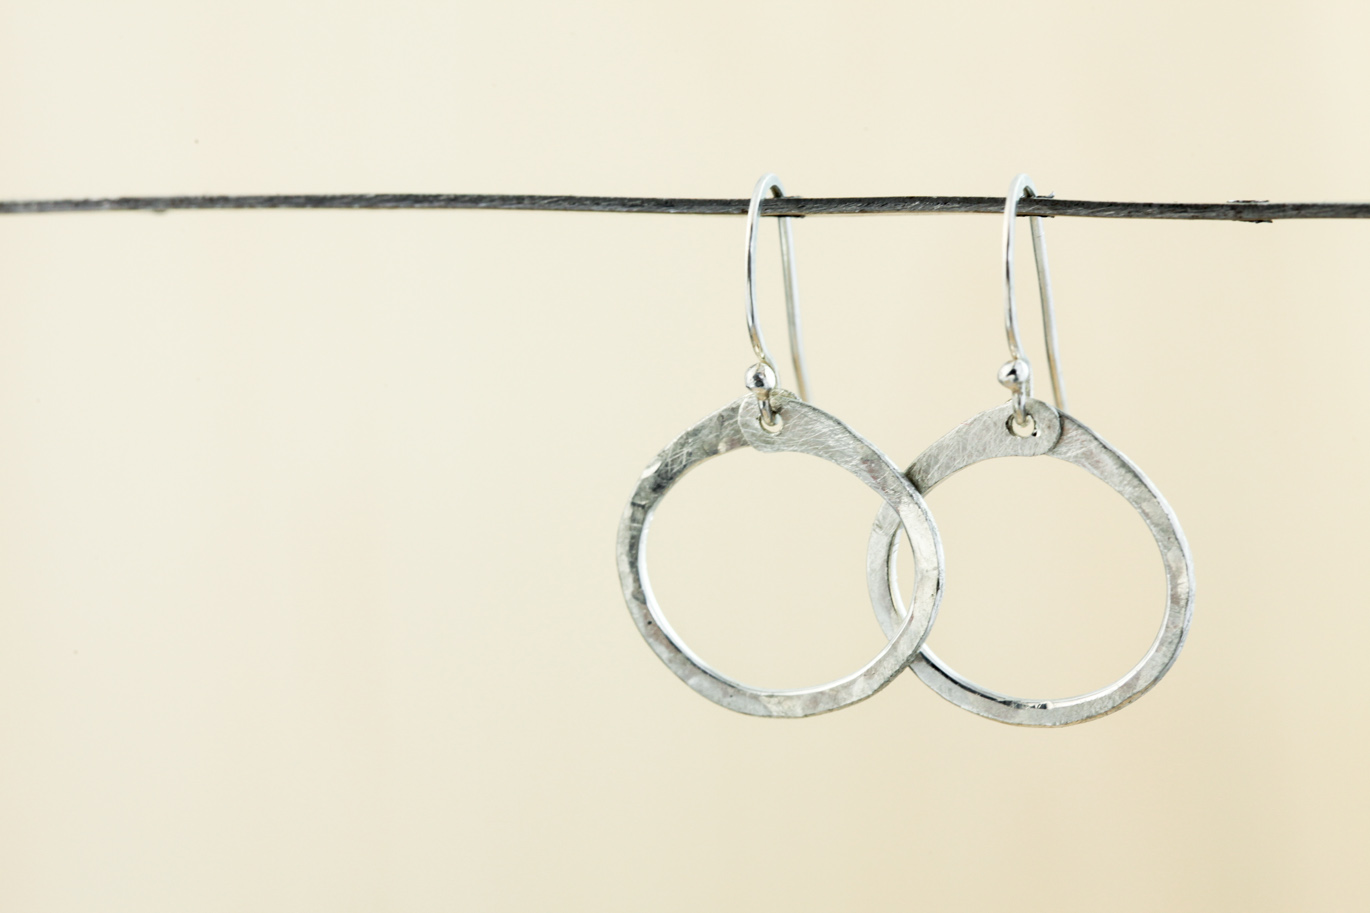 68cc8aaa8 Simple Zen Circle - Small Drop Hoop Earrings - Hammered Silver ...